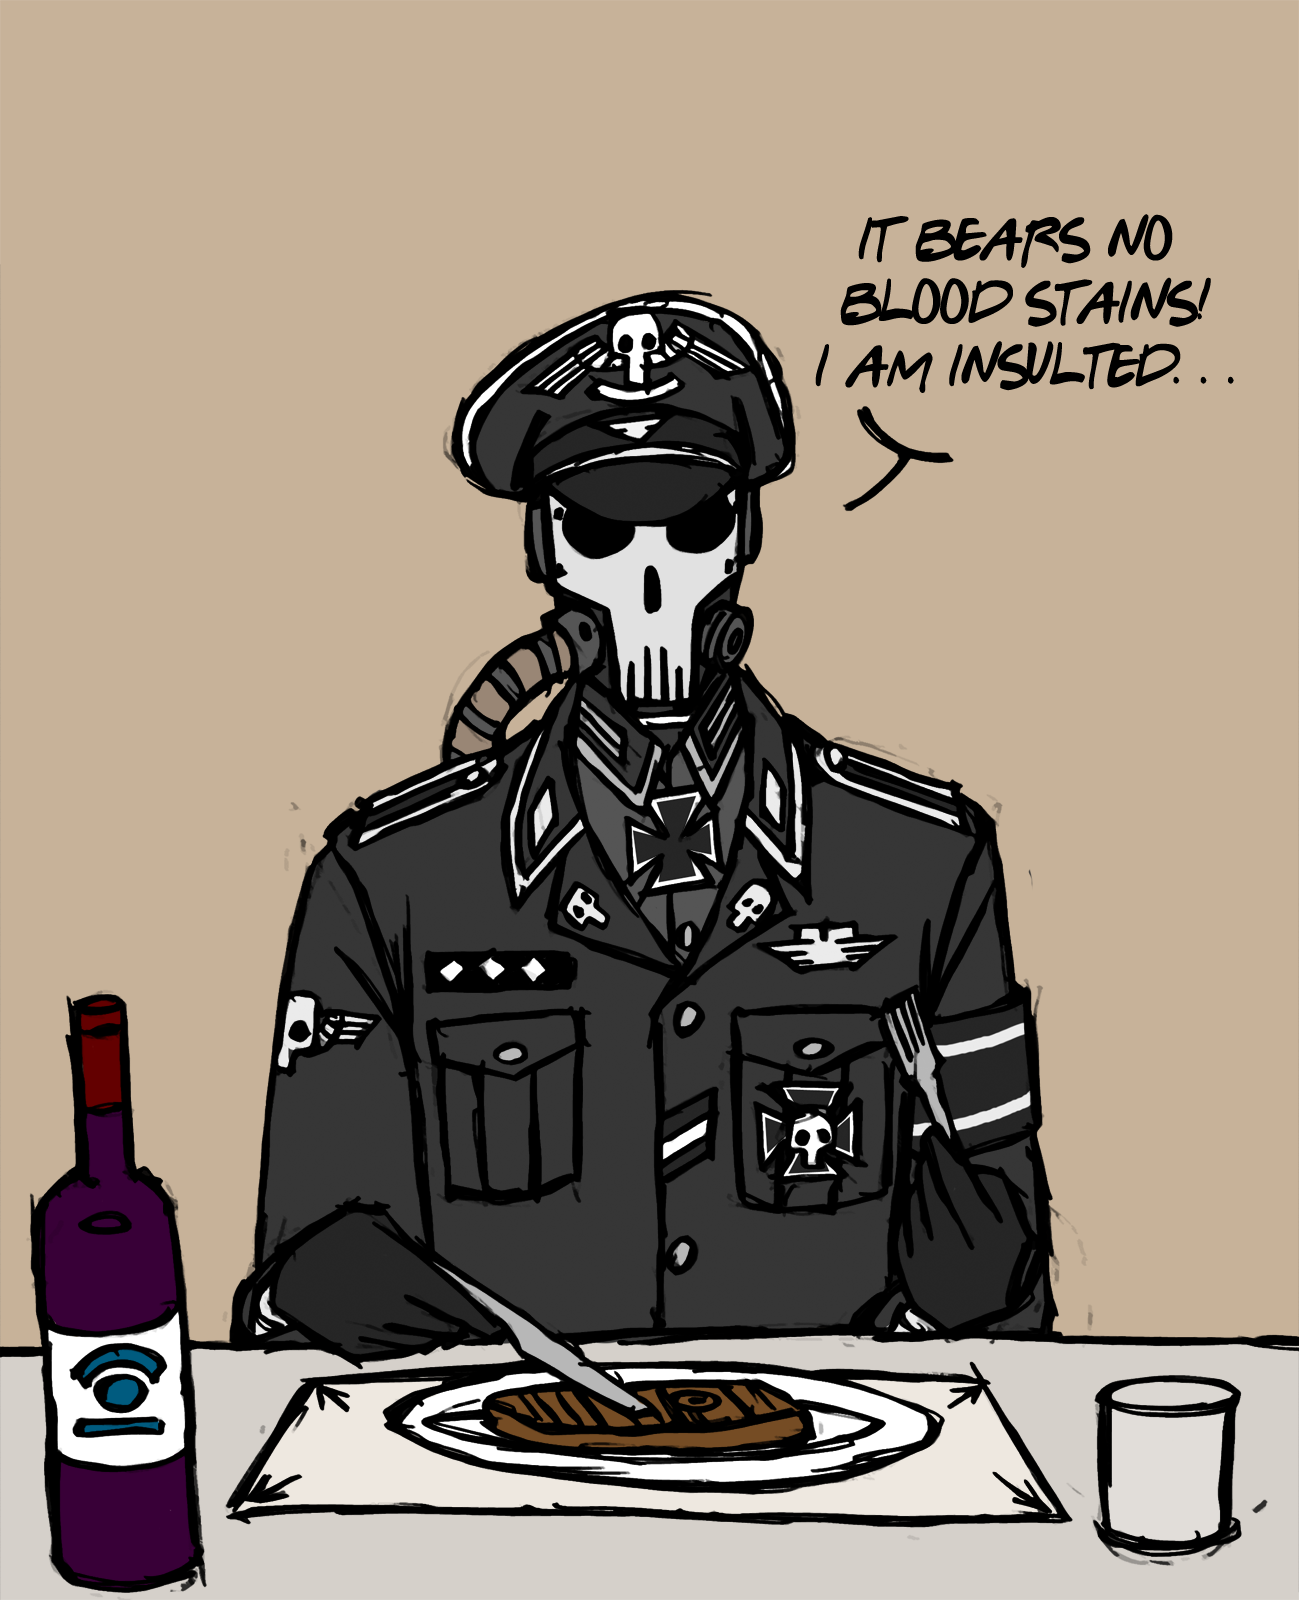 Dining With Death by NicklausofKrieg on DeviantArt